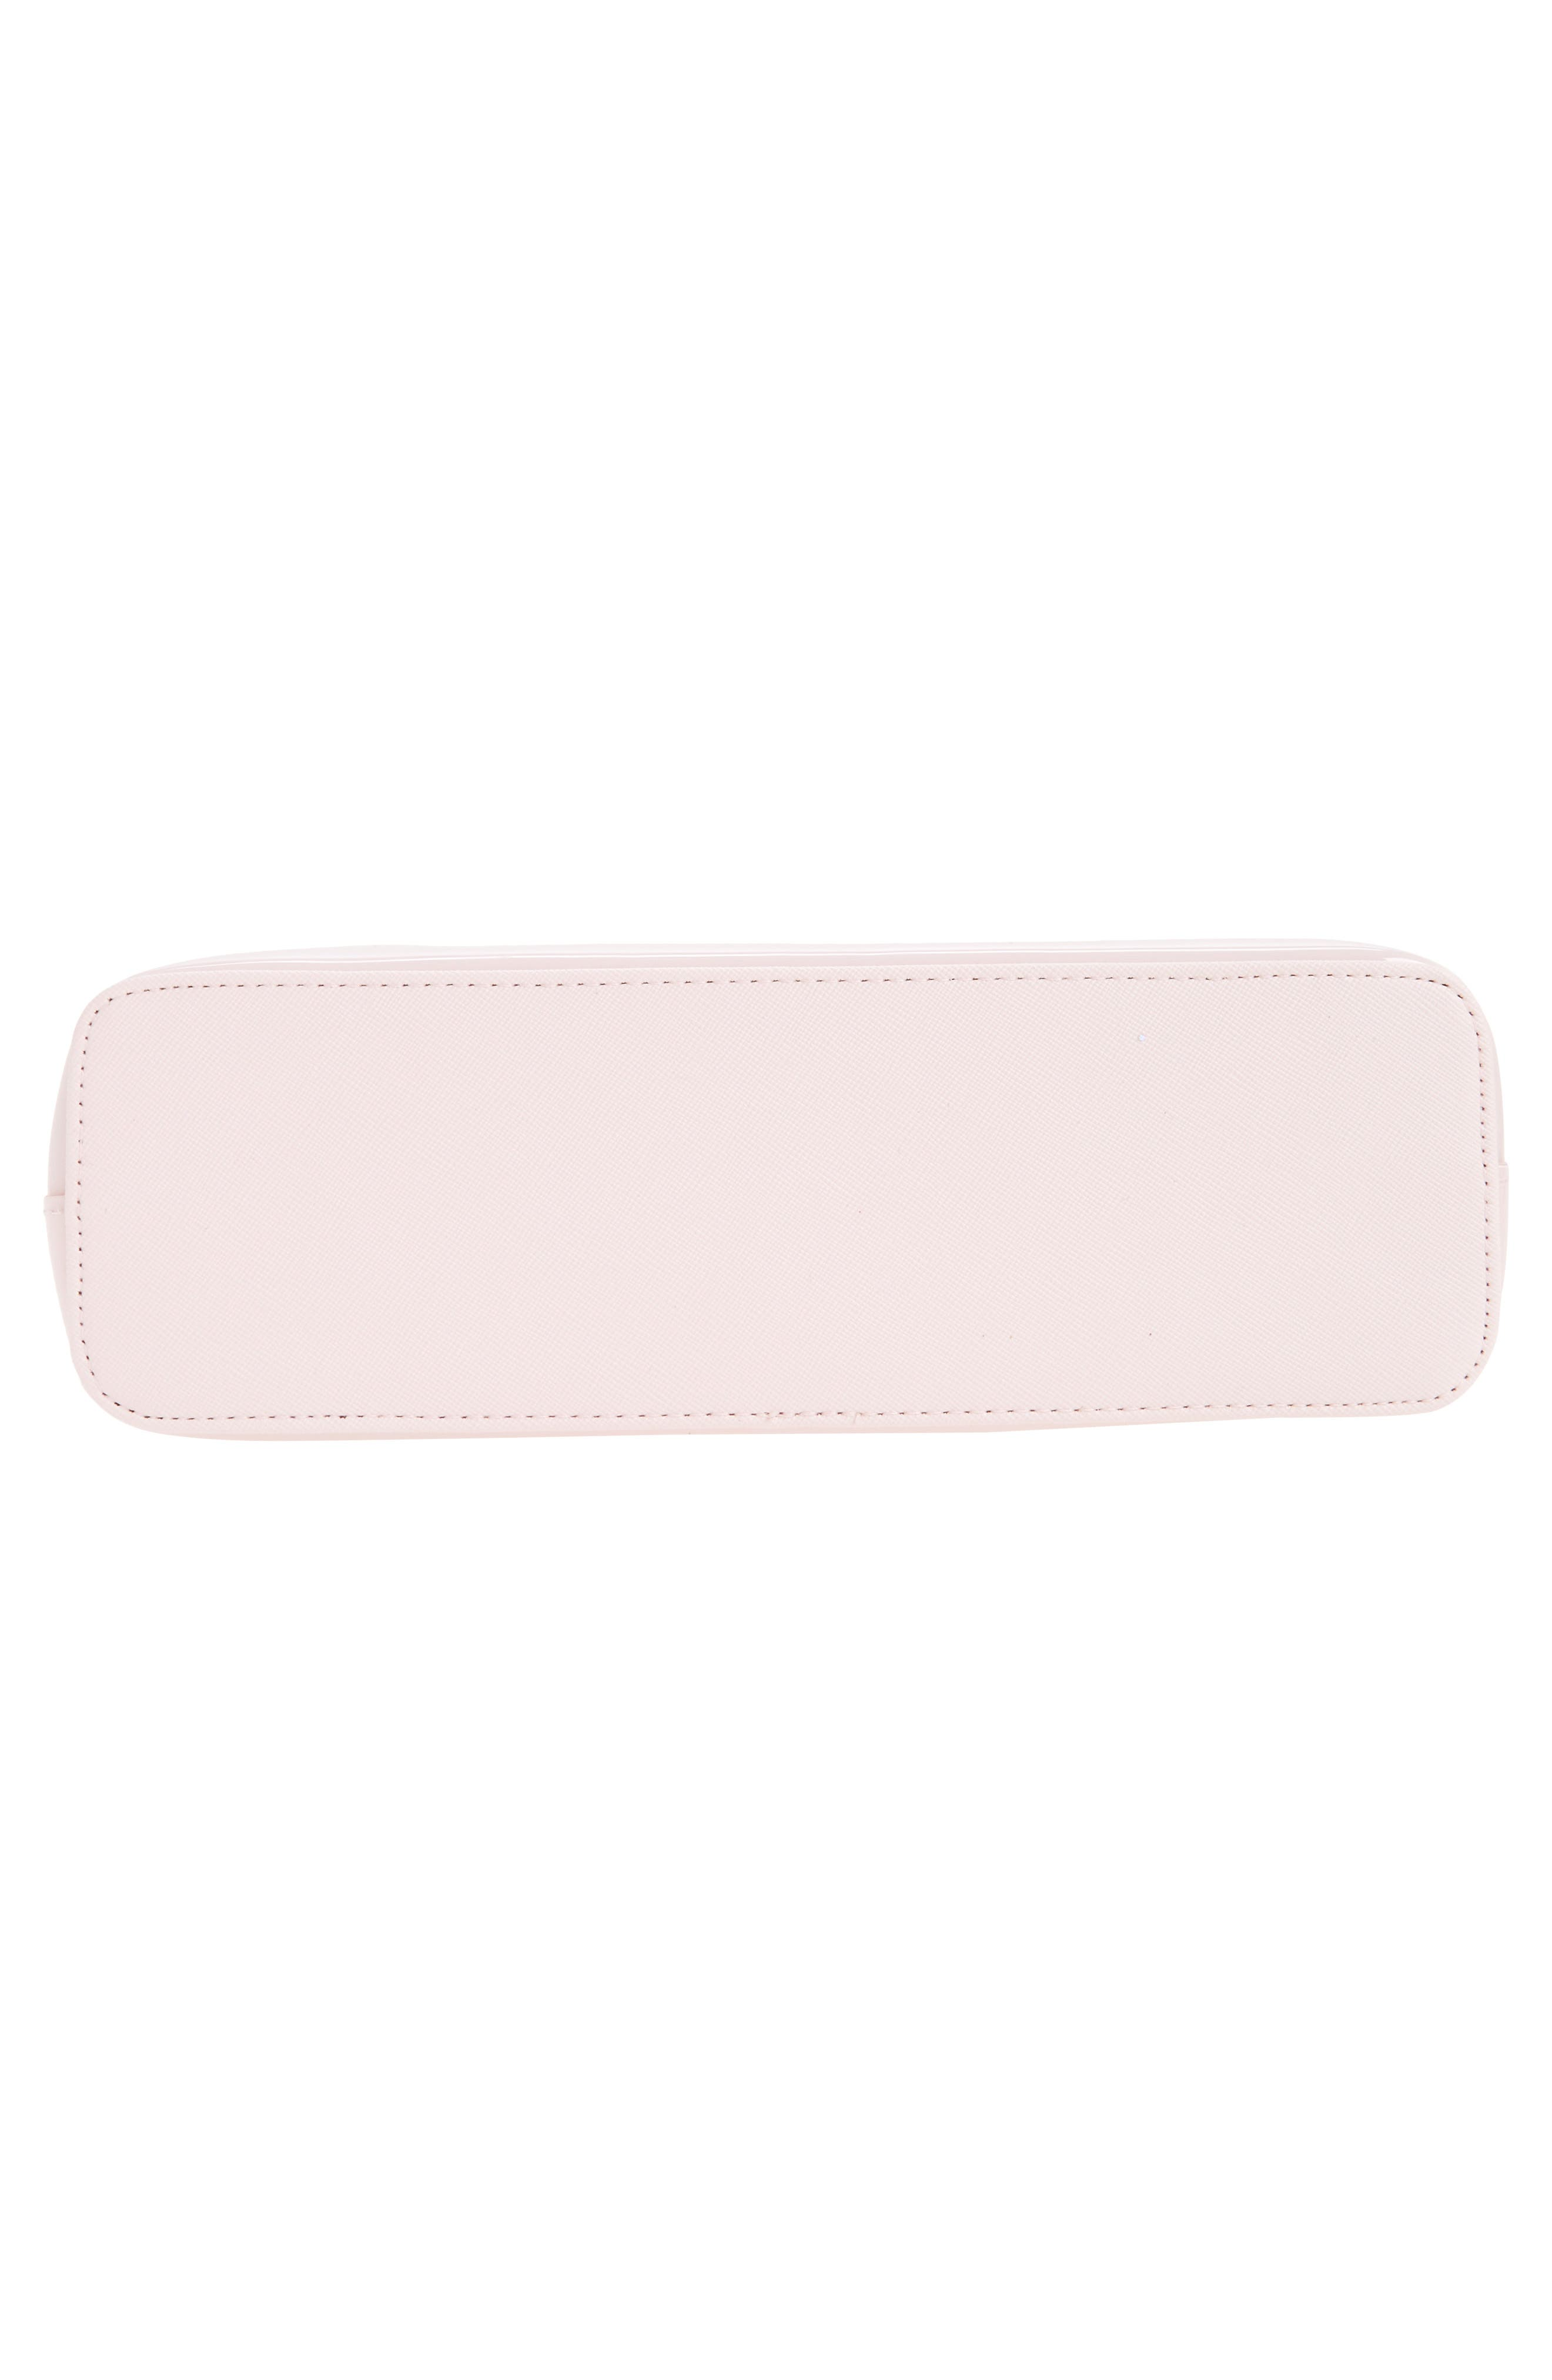 Jana Bow Cosmetic Case,                             Alternate thumbnail 5, color,                             Dusky Pink